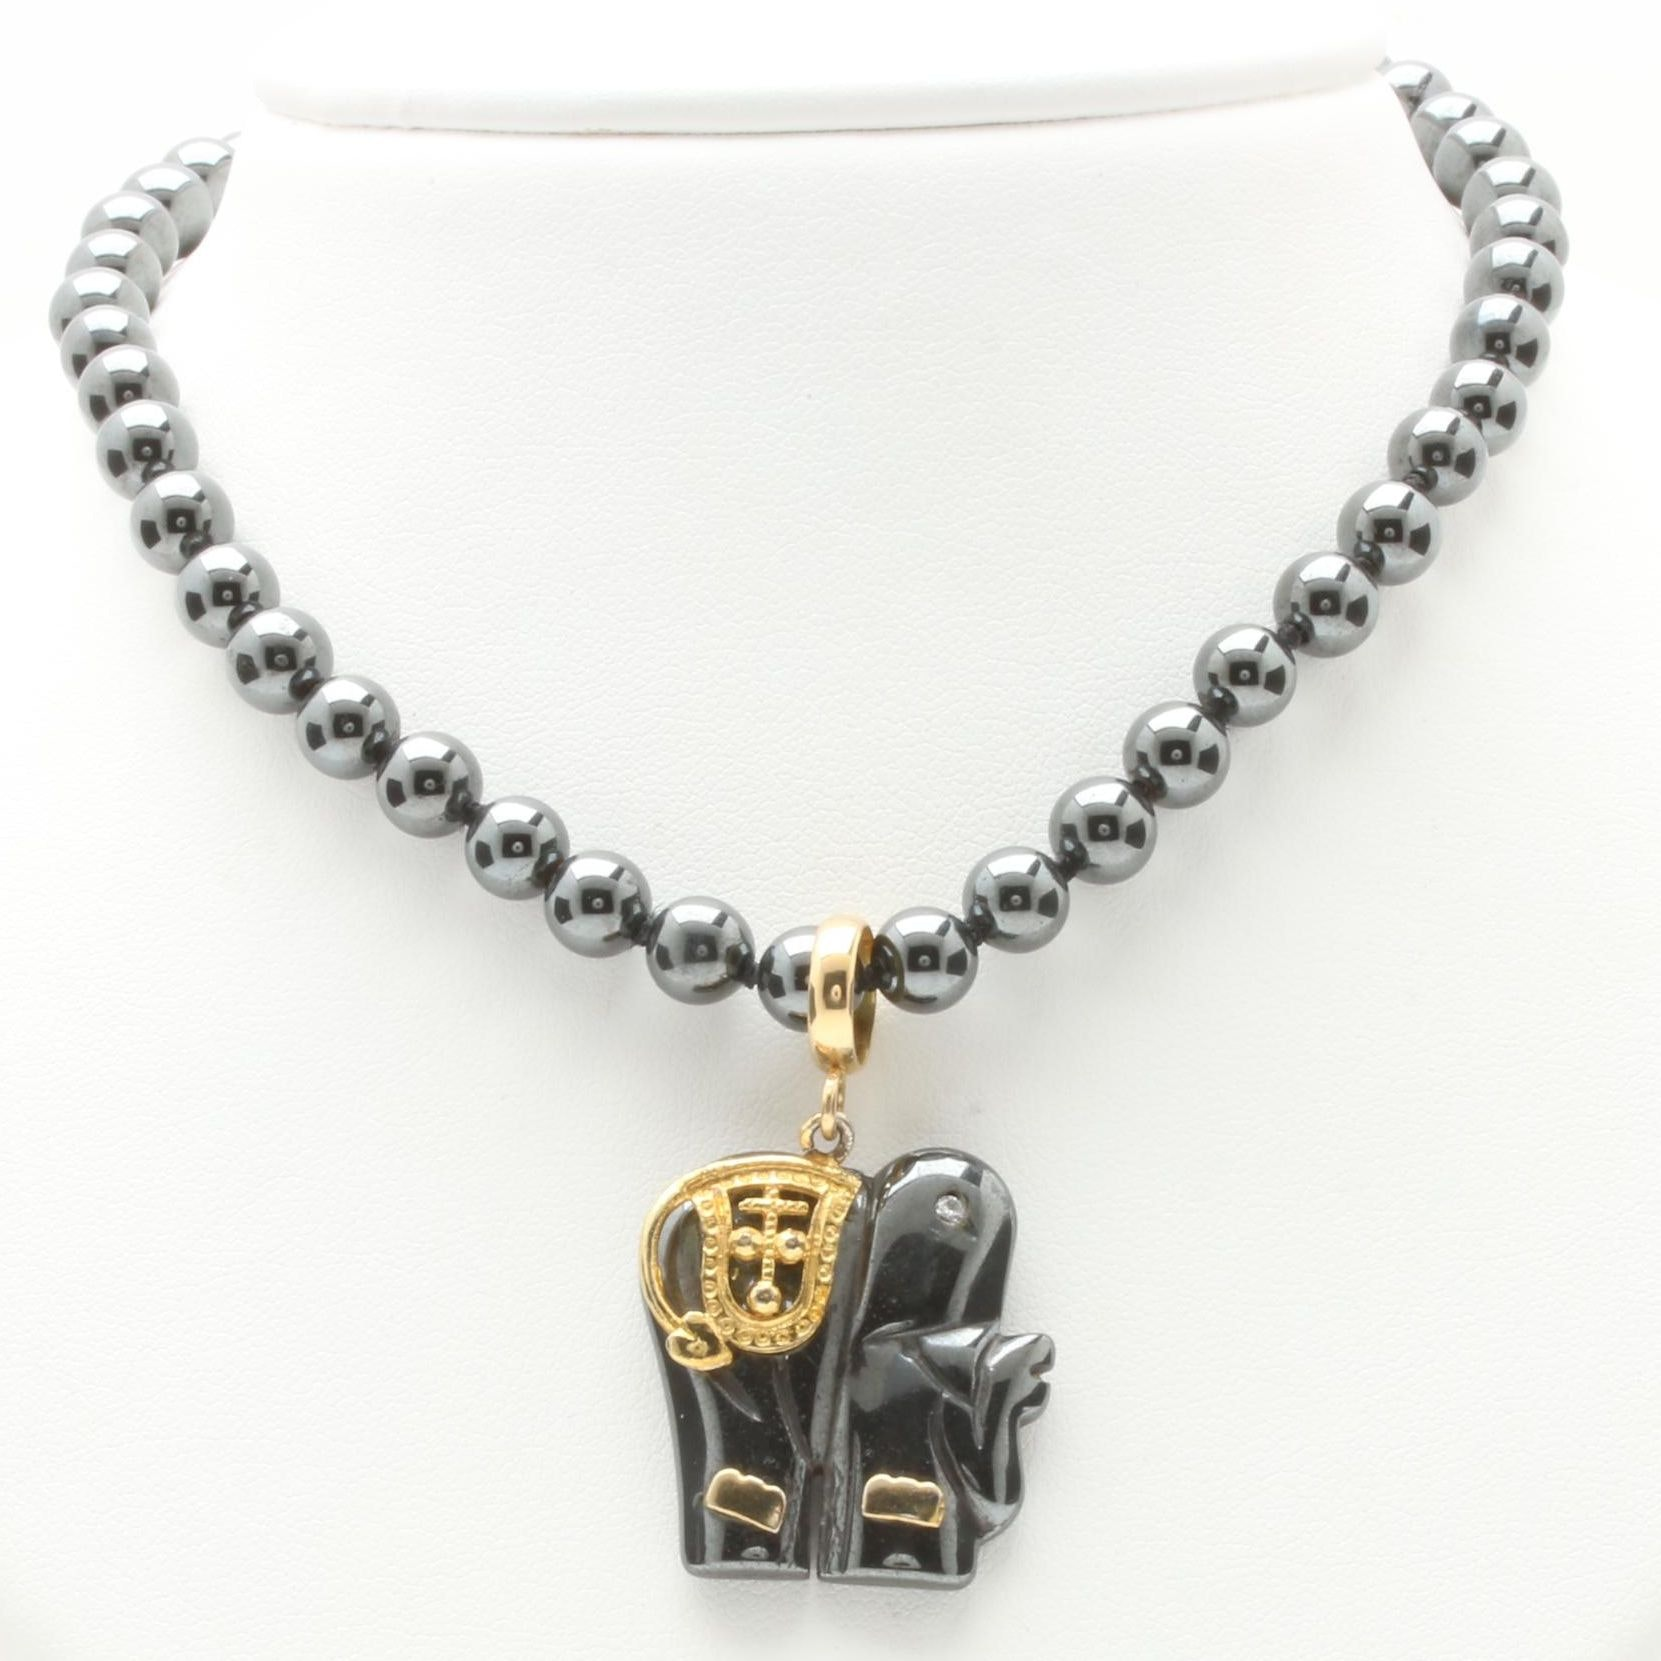 14K and 18K Yellow Gold Hematite and Diamond Necklace